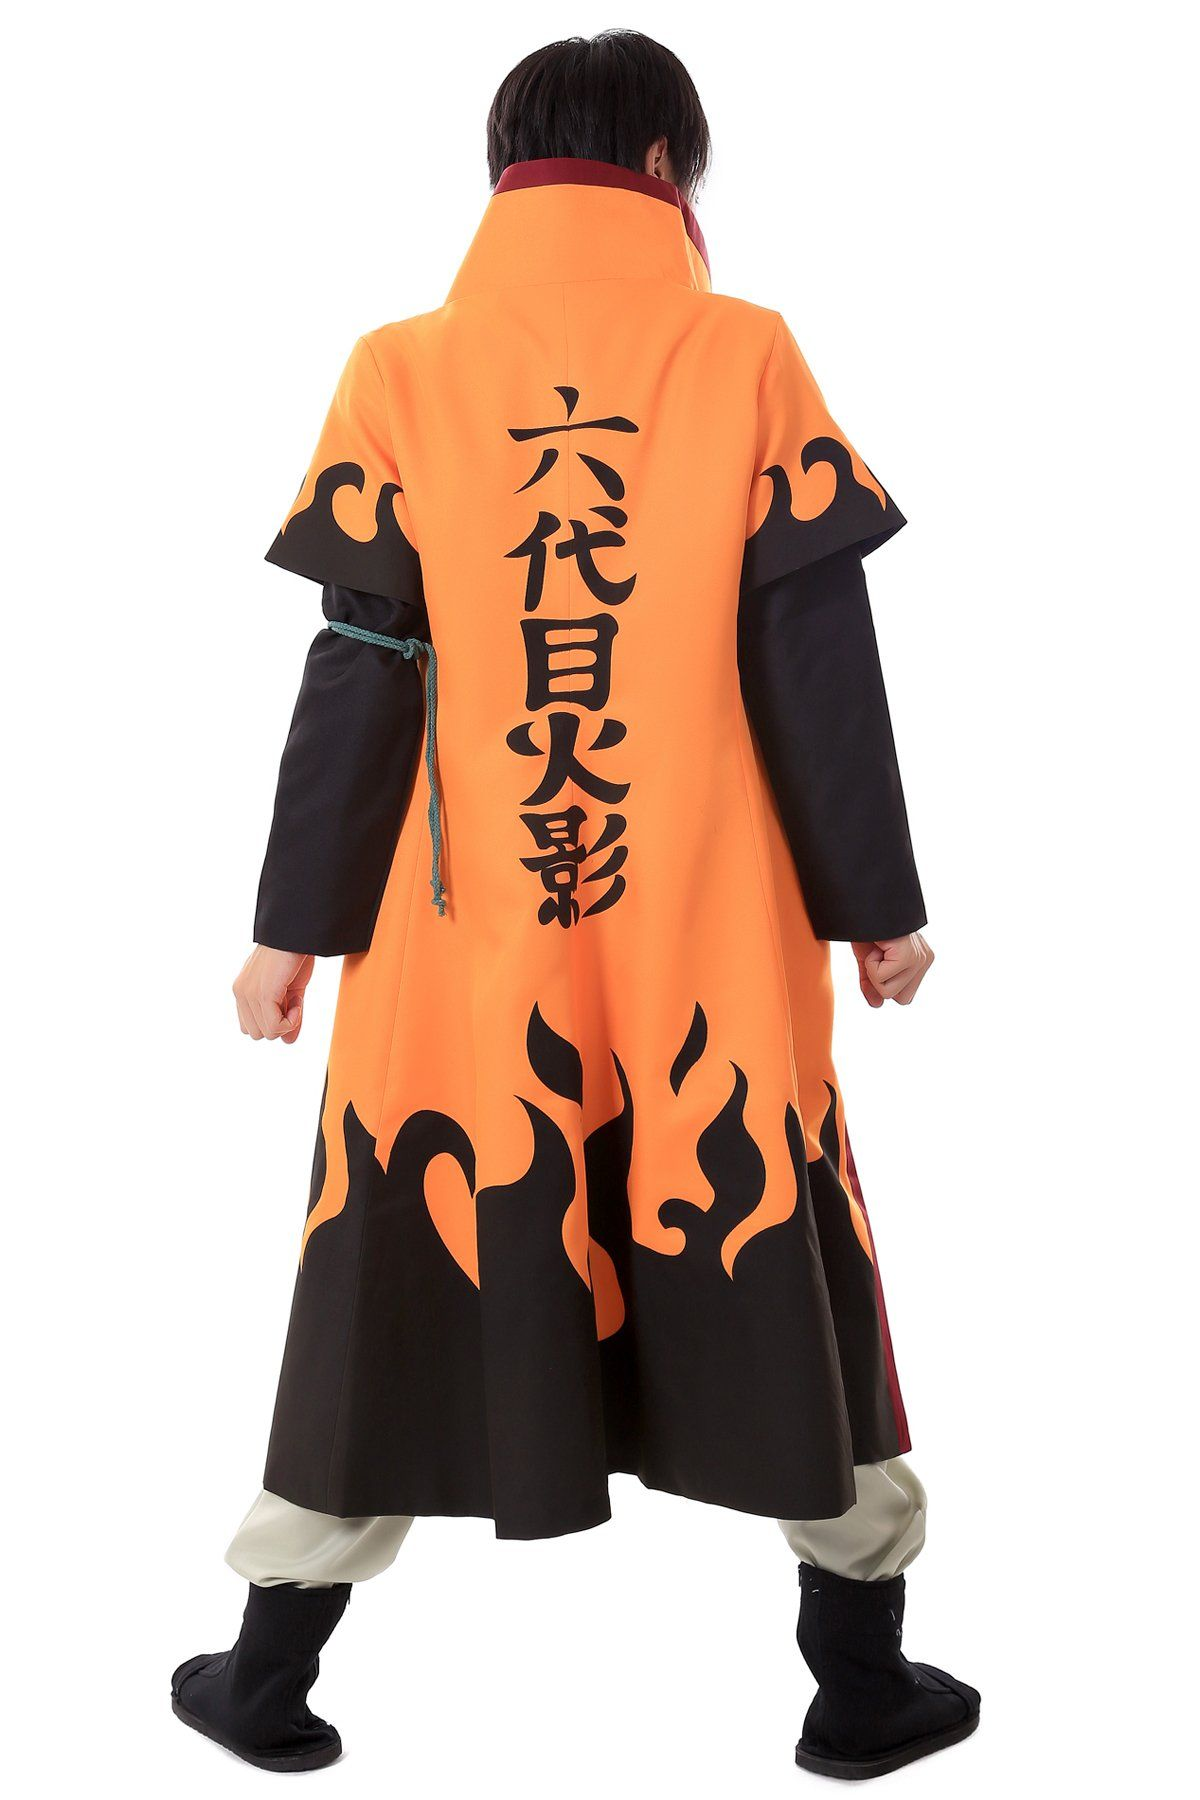 ICEMPs Cosplay Costume Hidden Leaf Uzumaki Naruto Rokudaime 6th Hokage Set Click Picture For Even More Details This Is An Affiliate Link